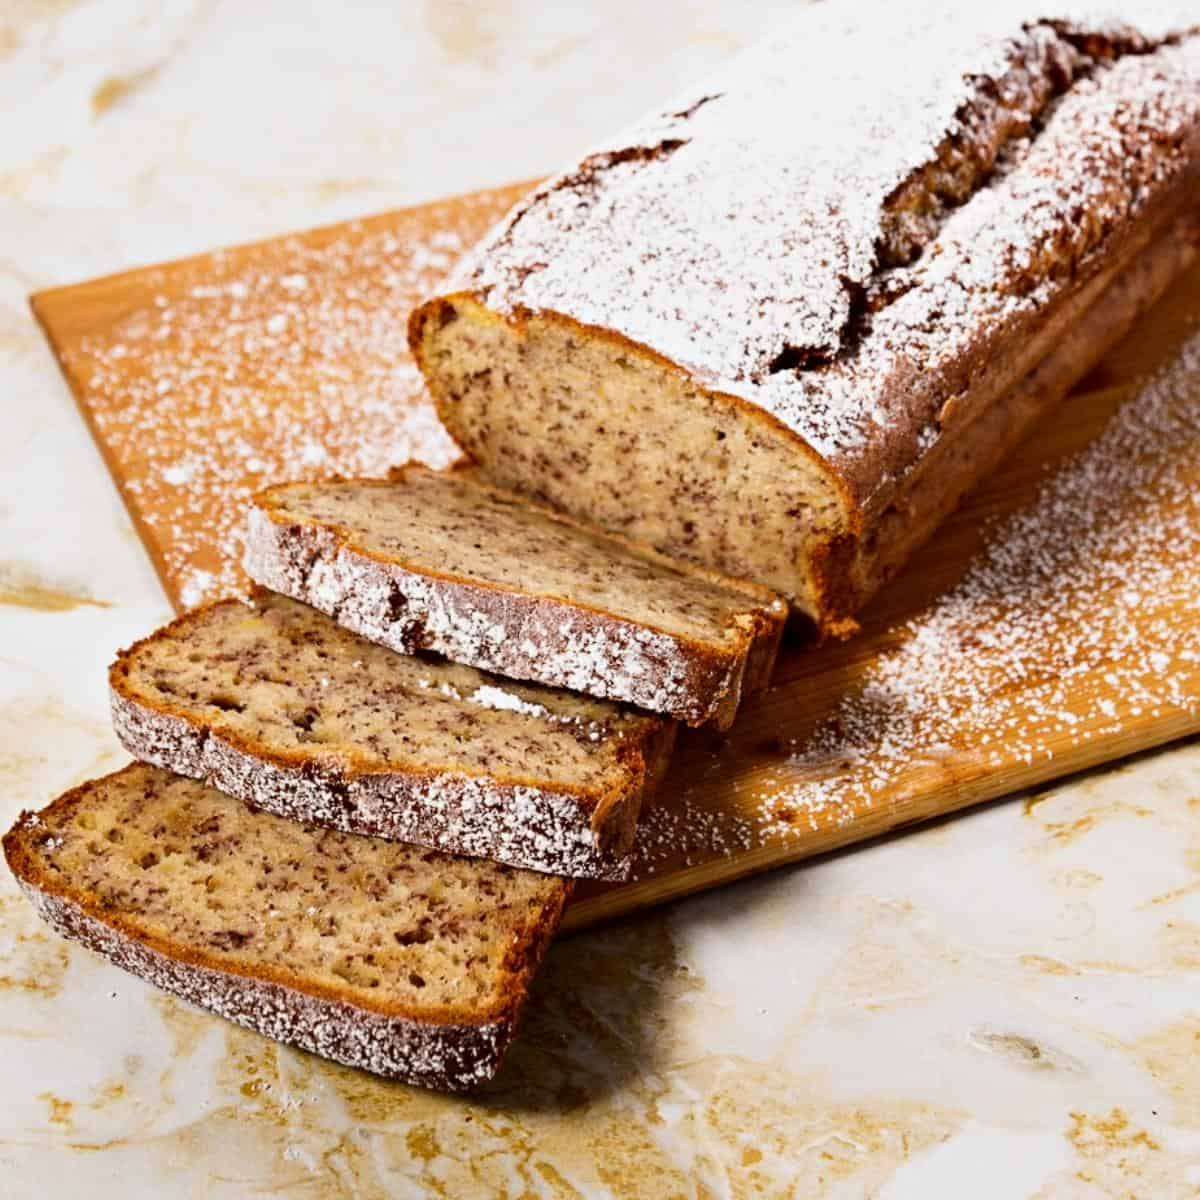 A sliced banana loaf cake on a wooden board.